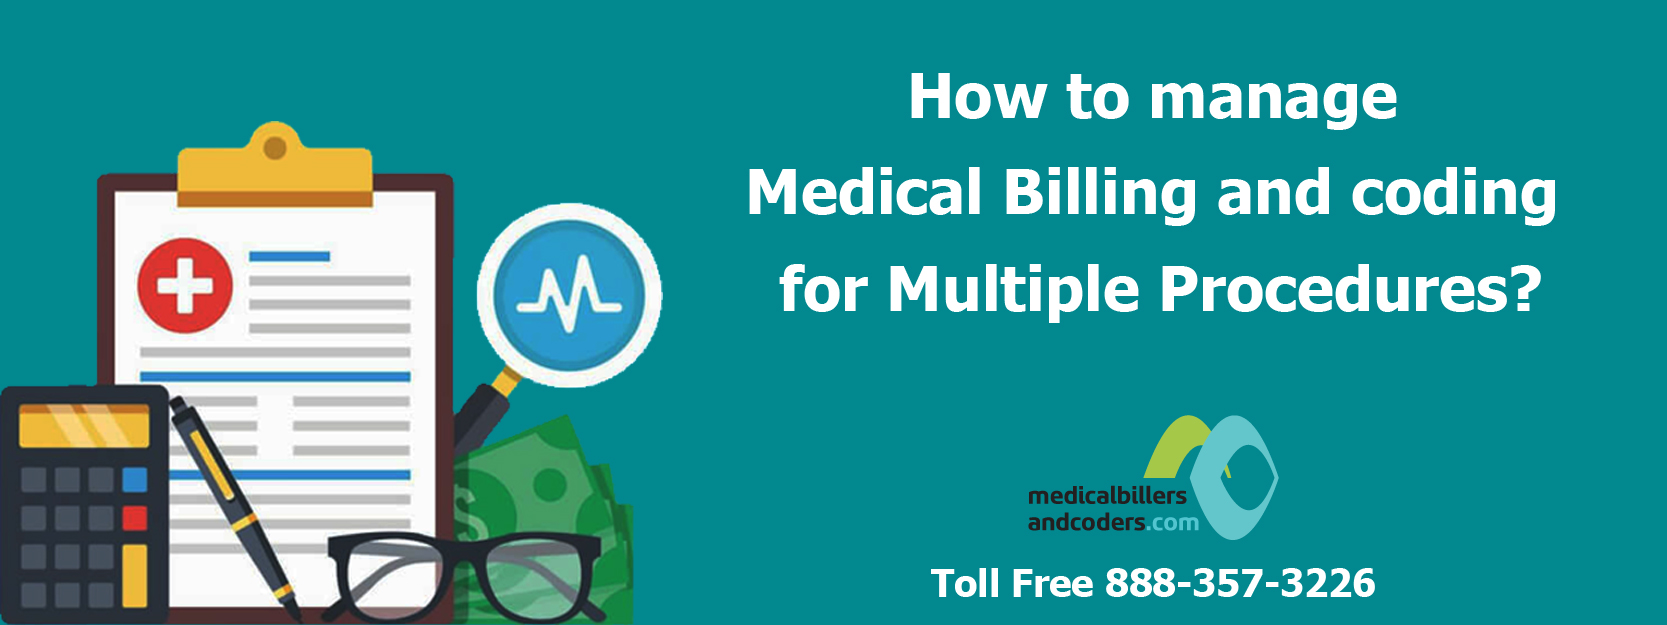 How-to-manage-Medical-Billing-and-coding-for-Multiple-Procedures